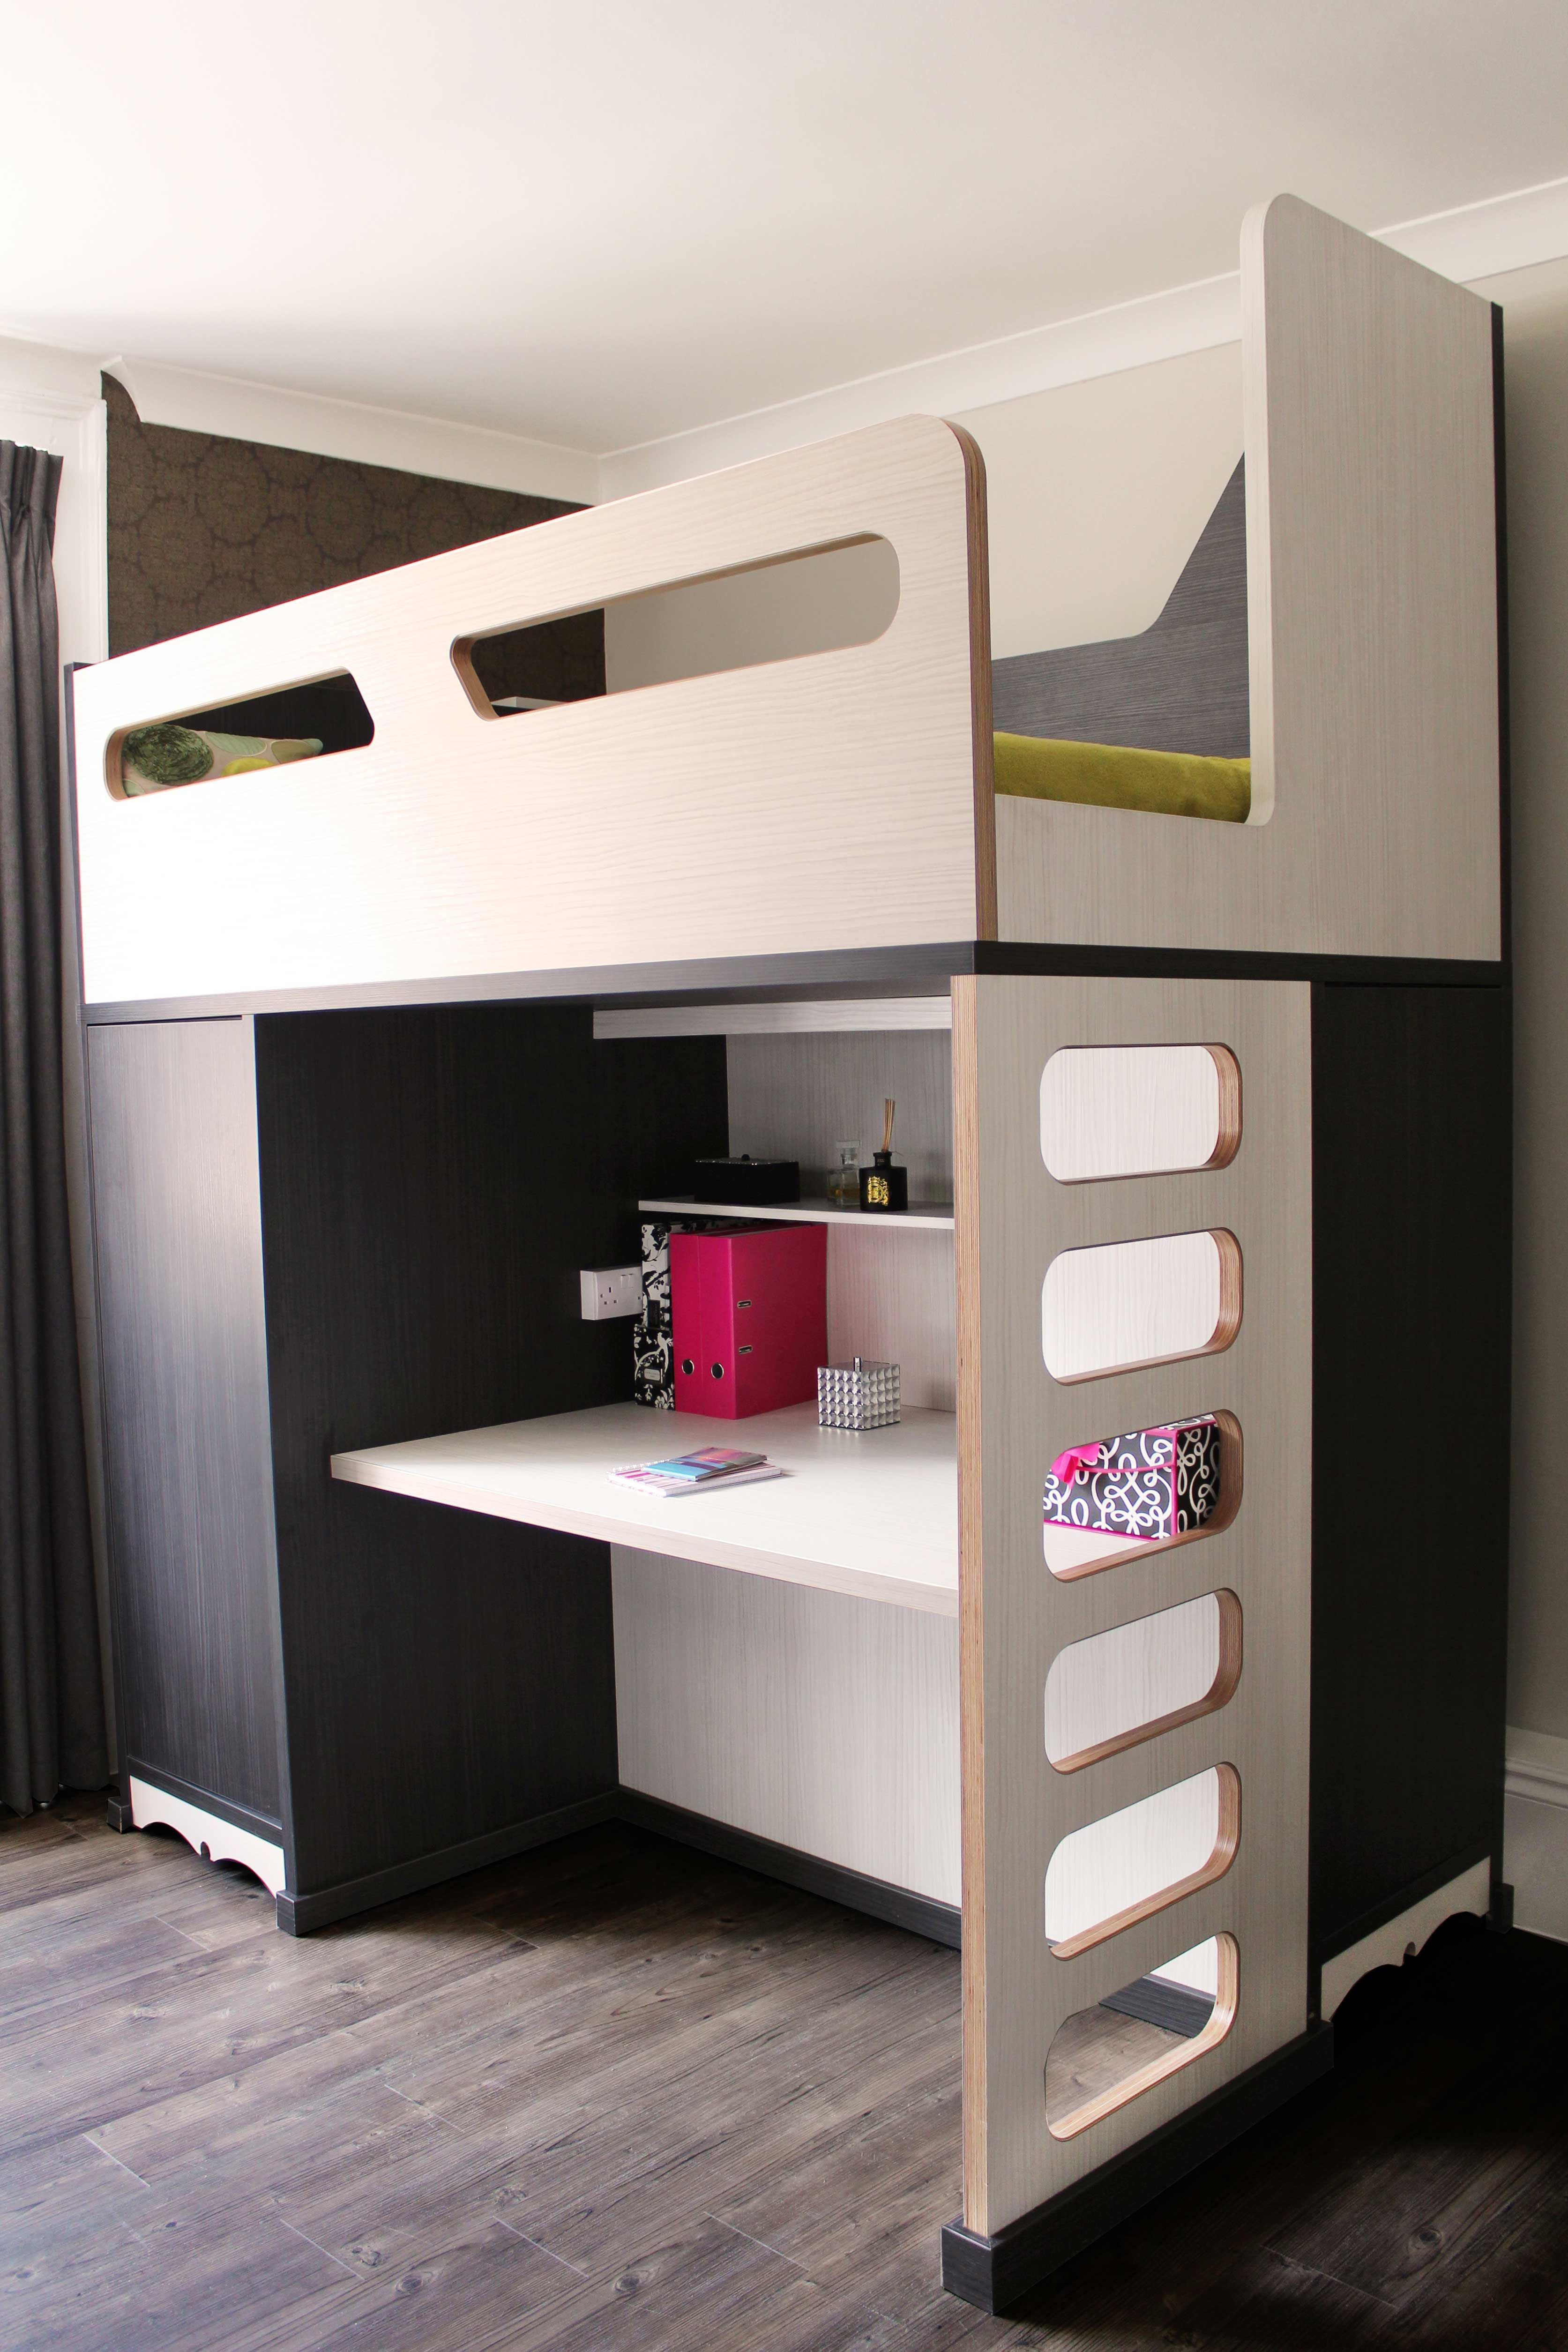 Bed Deck With Wardrobe And Desk, For Student Accommodation In Central London